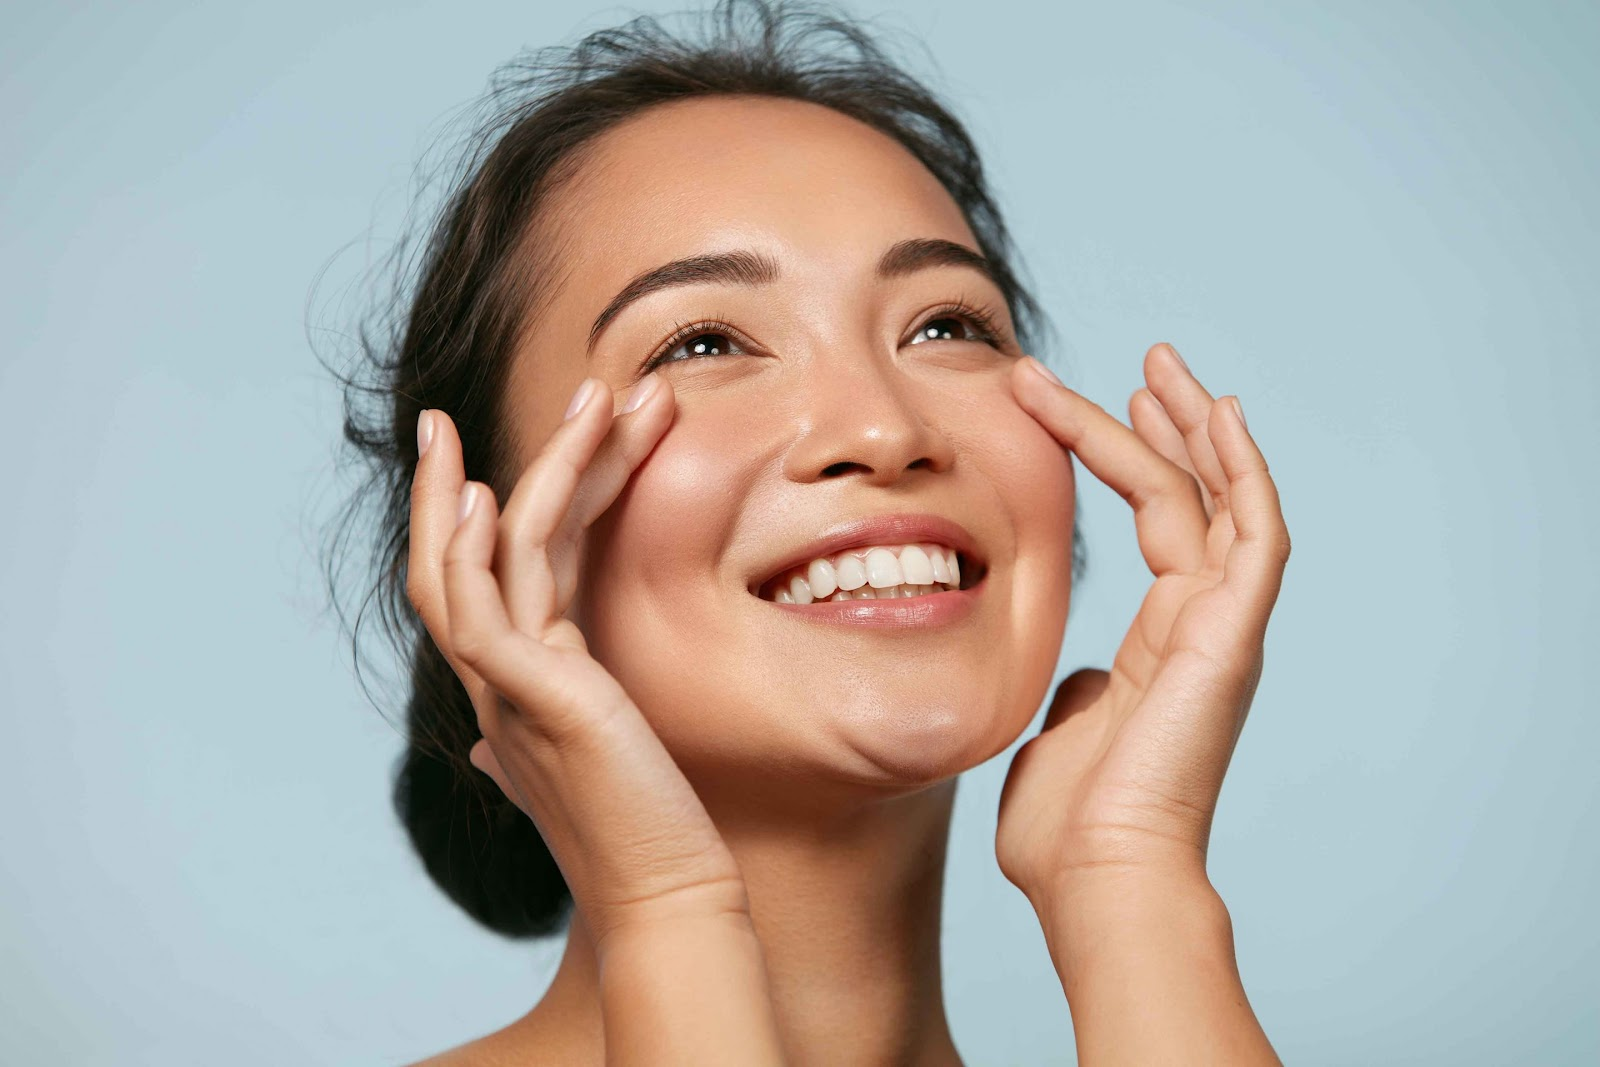 Book an Online Skin Consultation to Take Care of Your Skin Anytime!